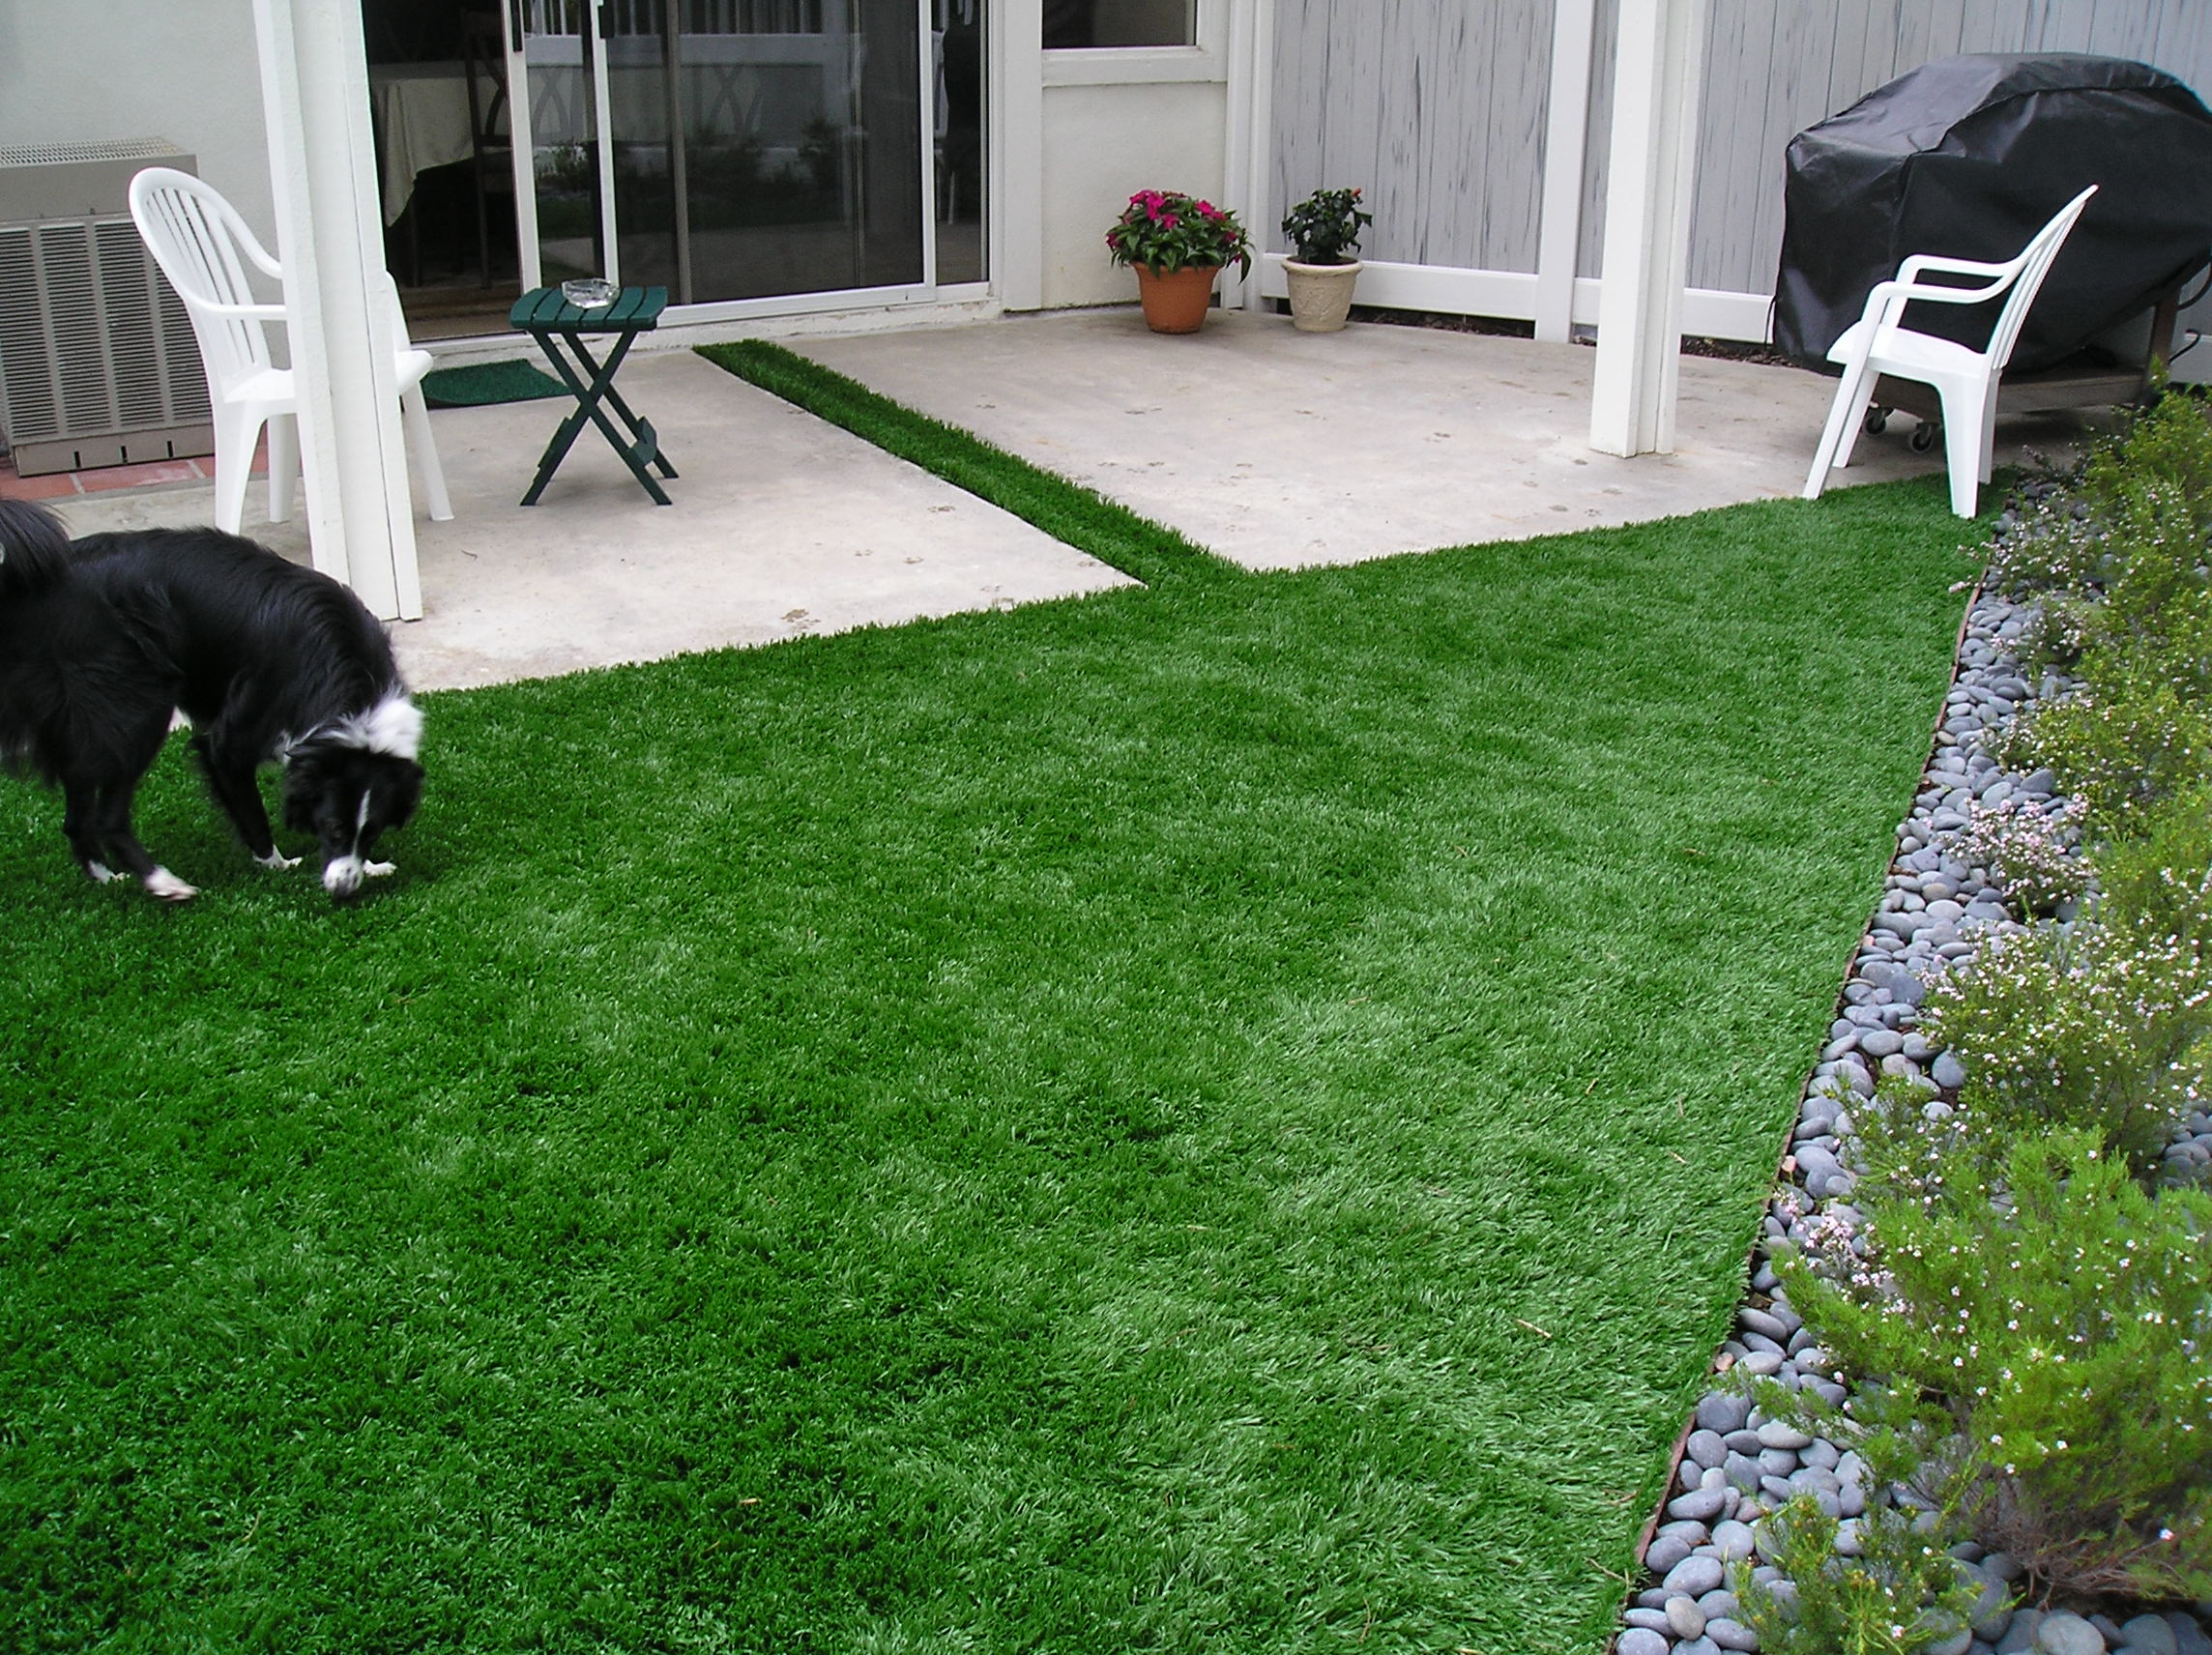 S Blade-90 pet friendly artificial grass